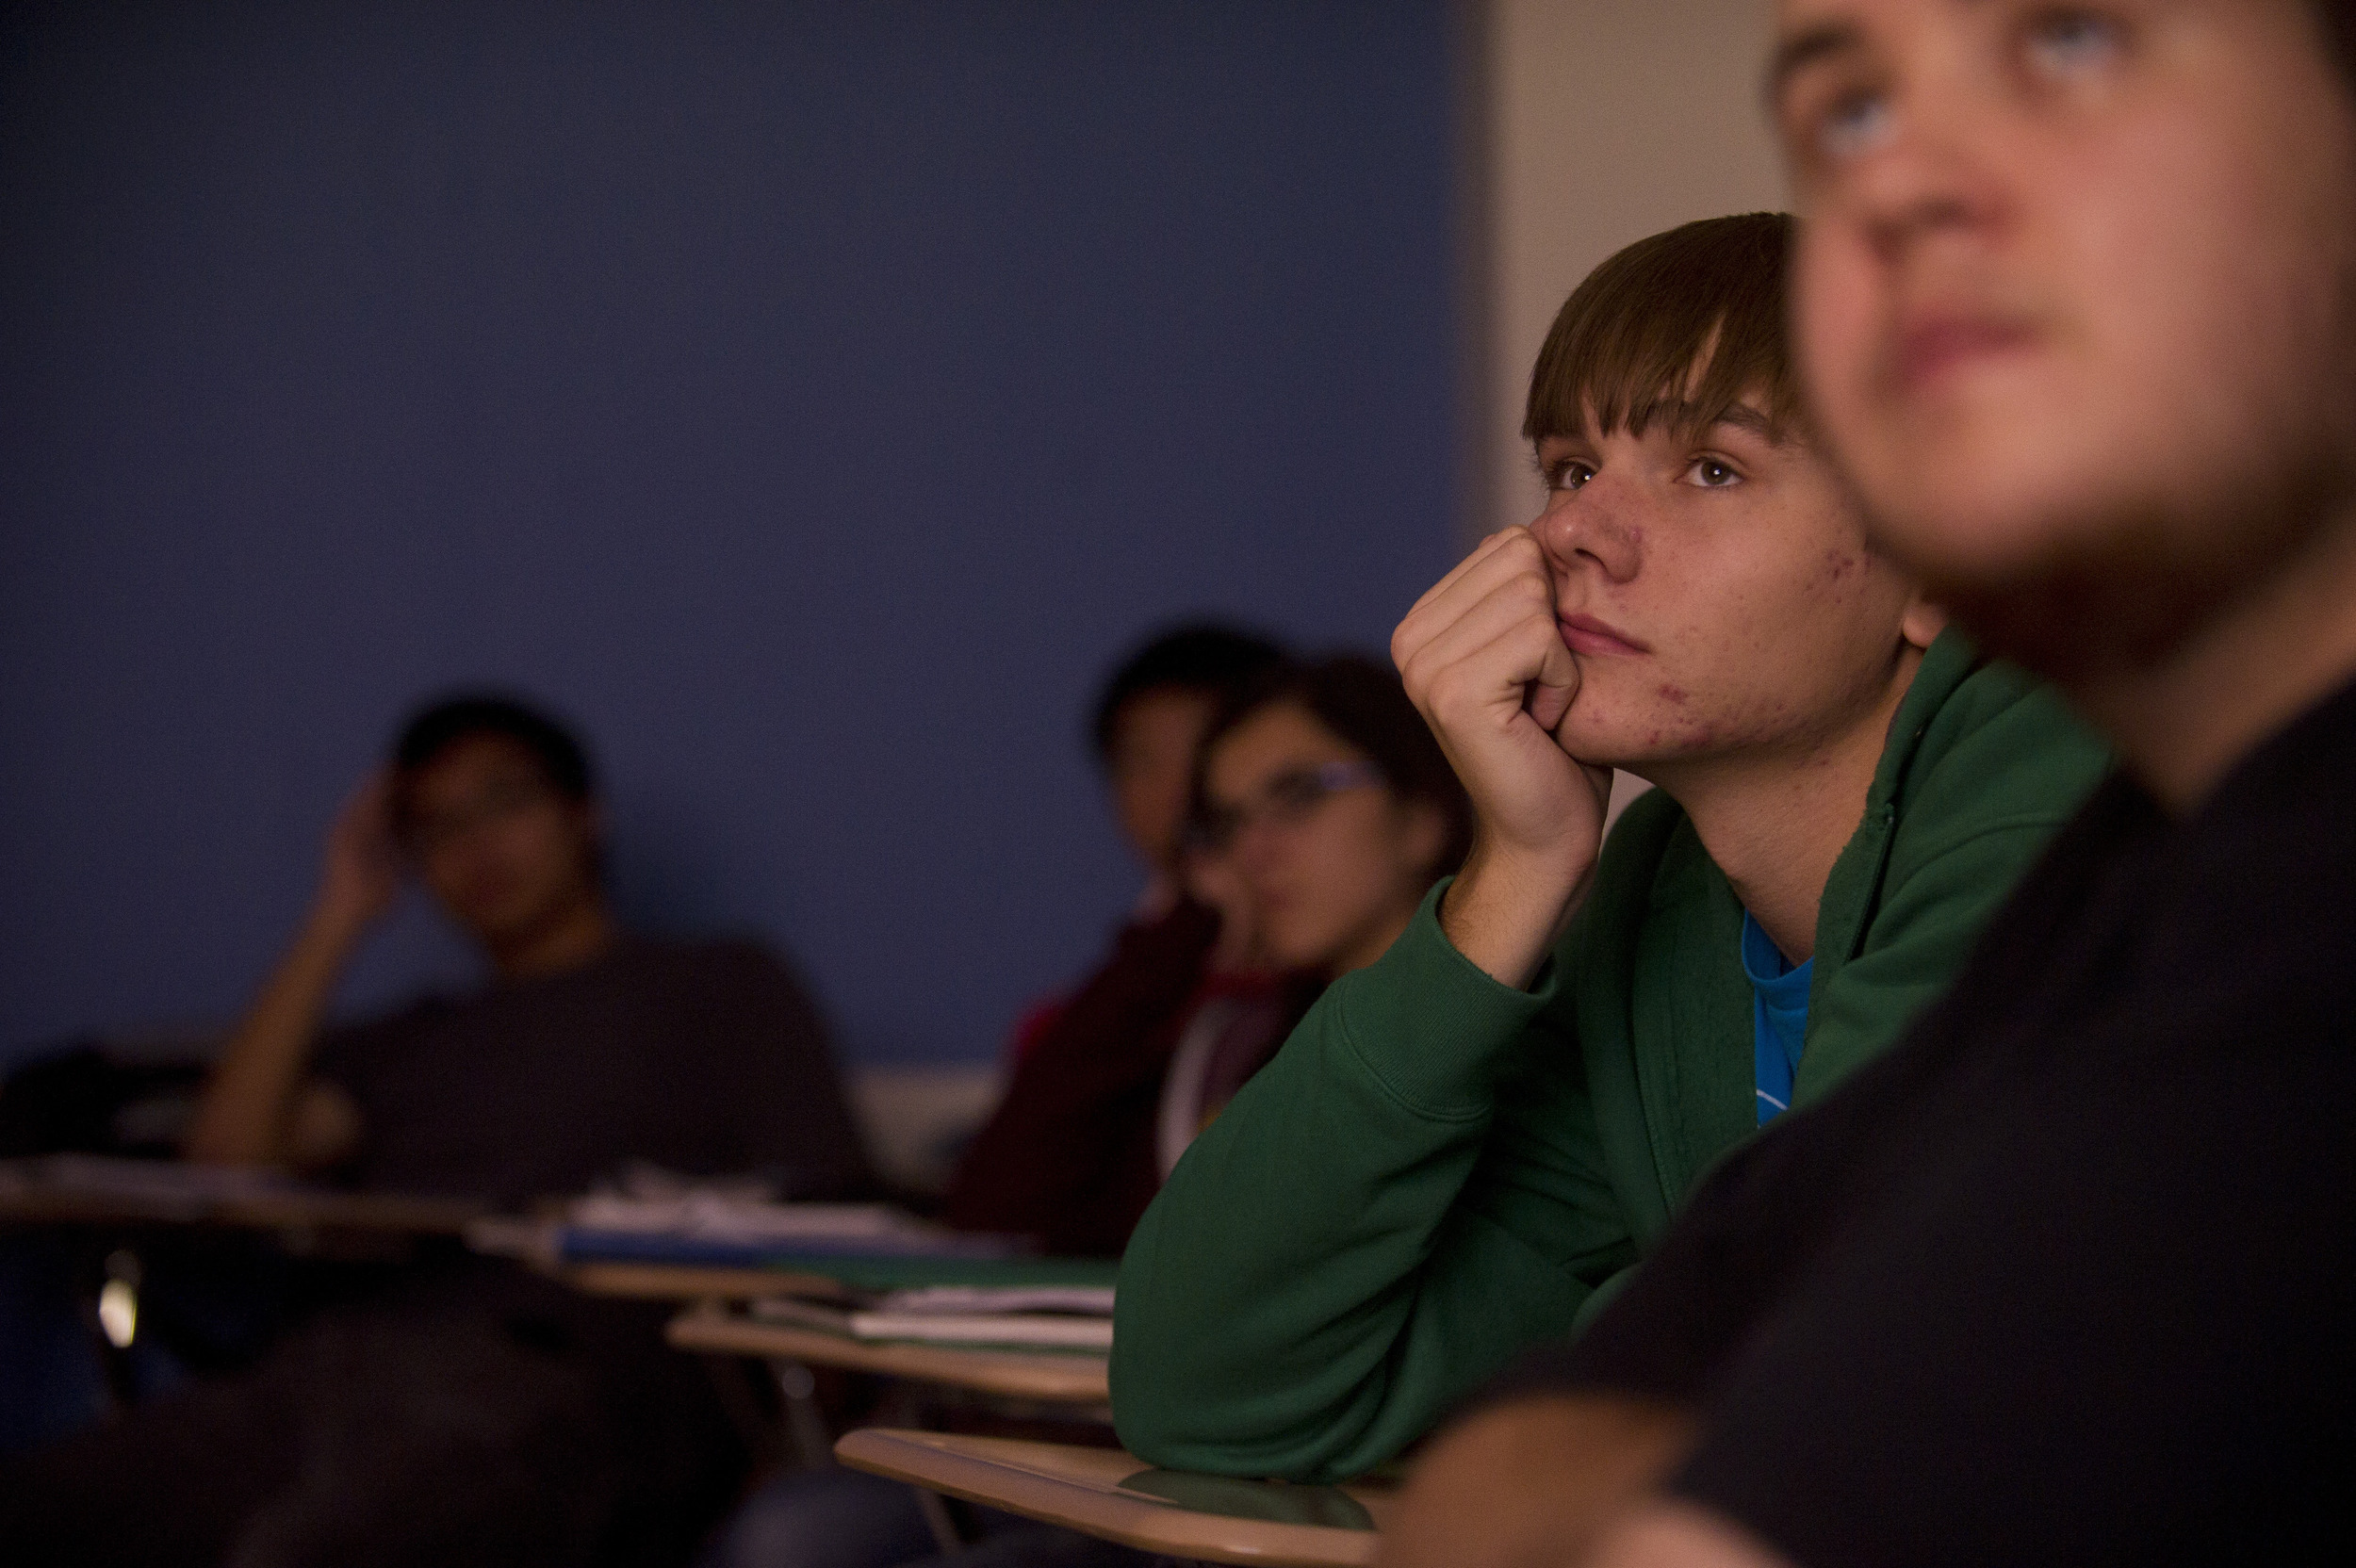 Nathan Hepler (ENG,'15) watches an episode of Battlestar Galactica during Joelle Renstrom's Evolution of Science Fiction class. Photo by Cydney Scott for Boston University Photography